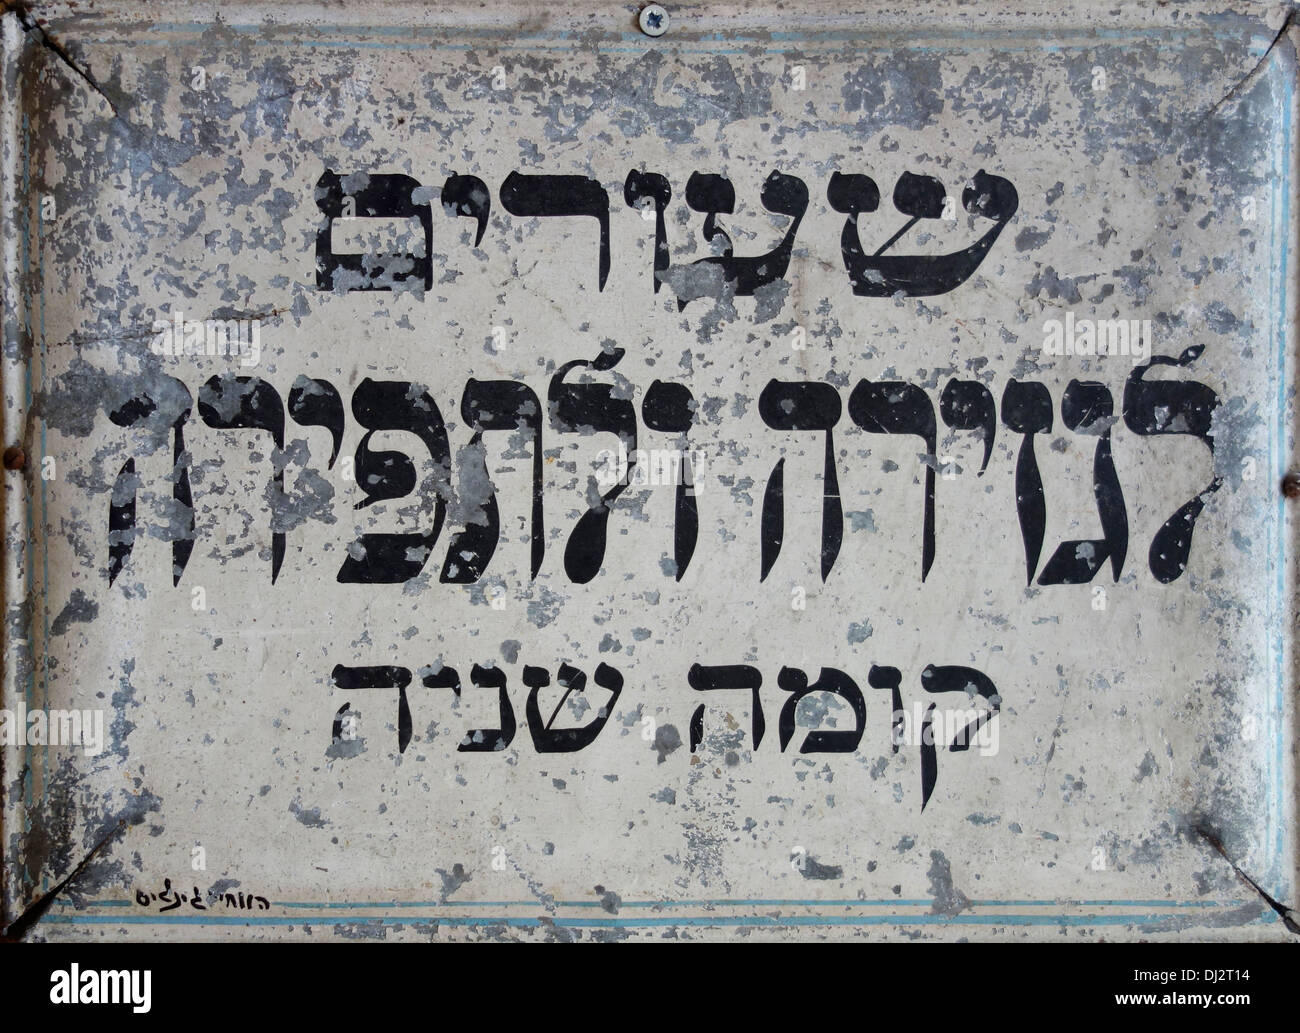 An old signboard in Hebrew which reads 'Lectures for Cutting and Sewing. Second Floor'  in Israel - Stock Image